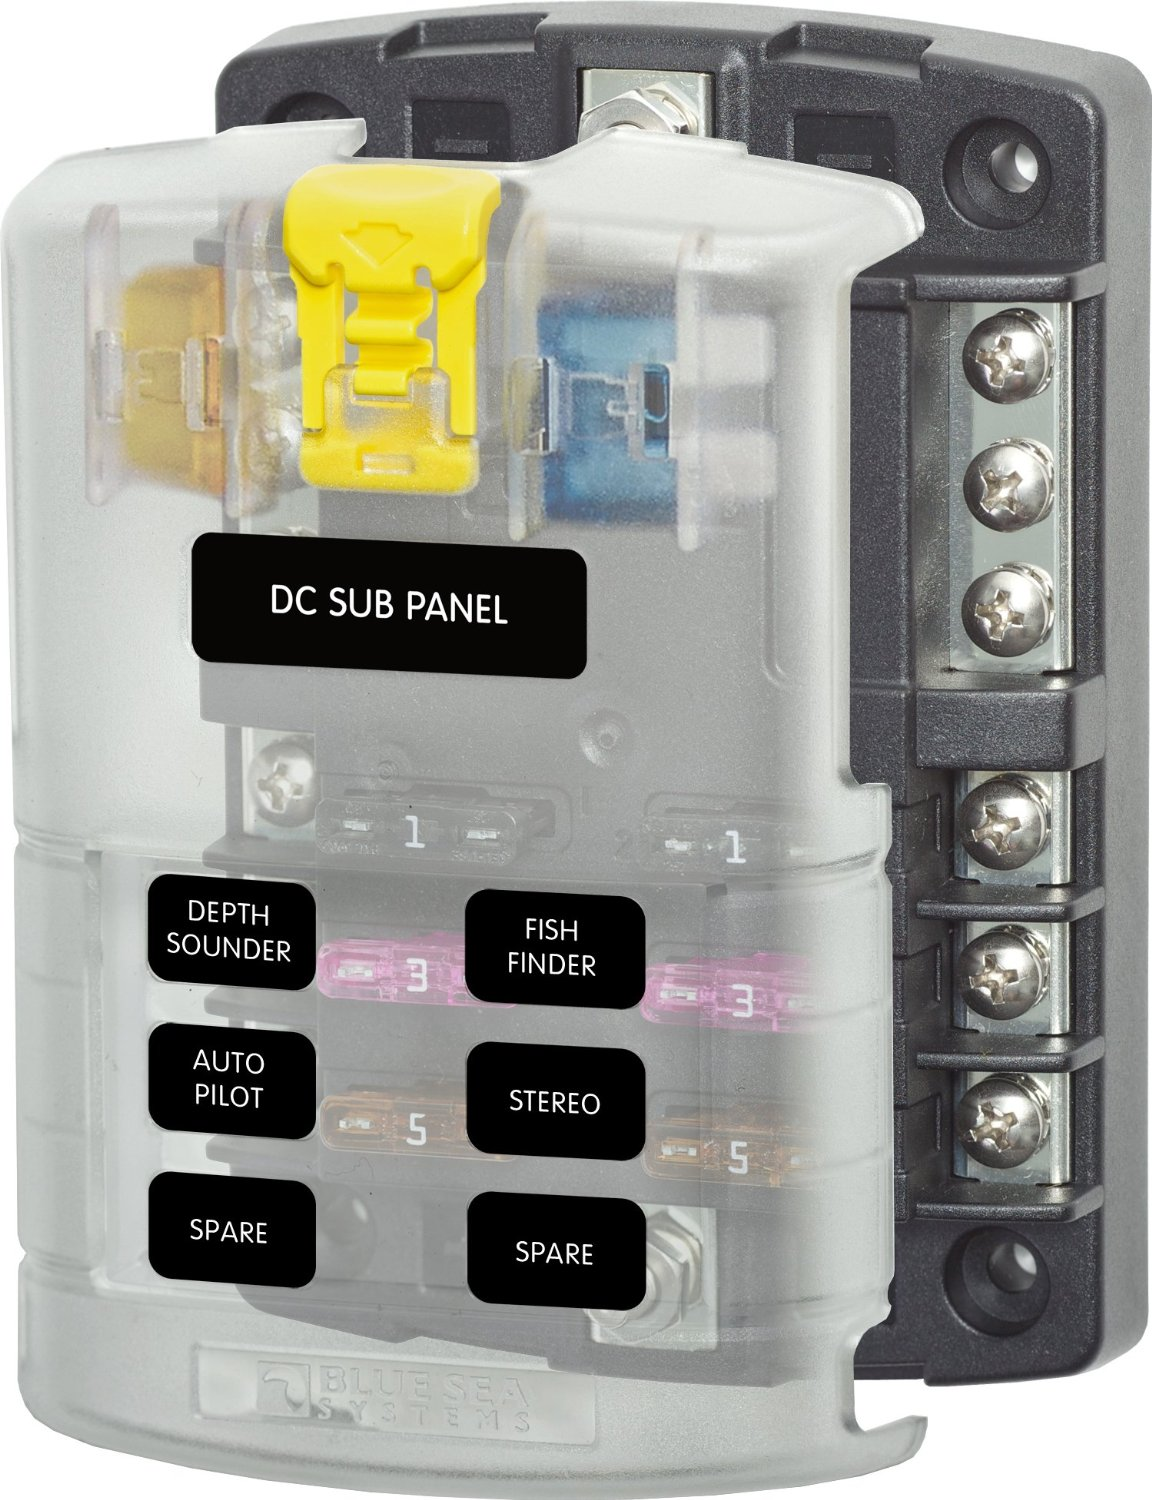 hight resolution of fuse block placement can am commander forumclick image for larger version name 81xeia6b2kl sl1500 jpg